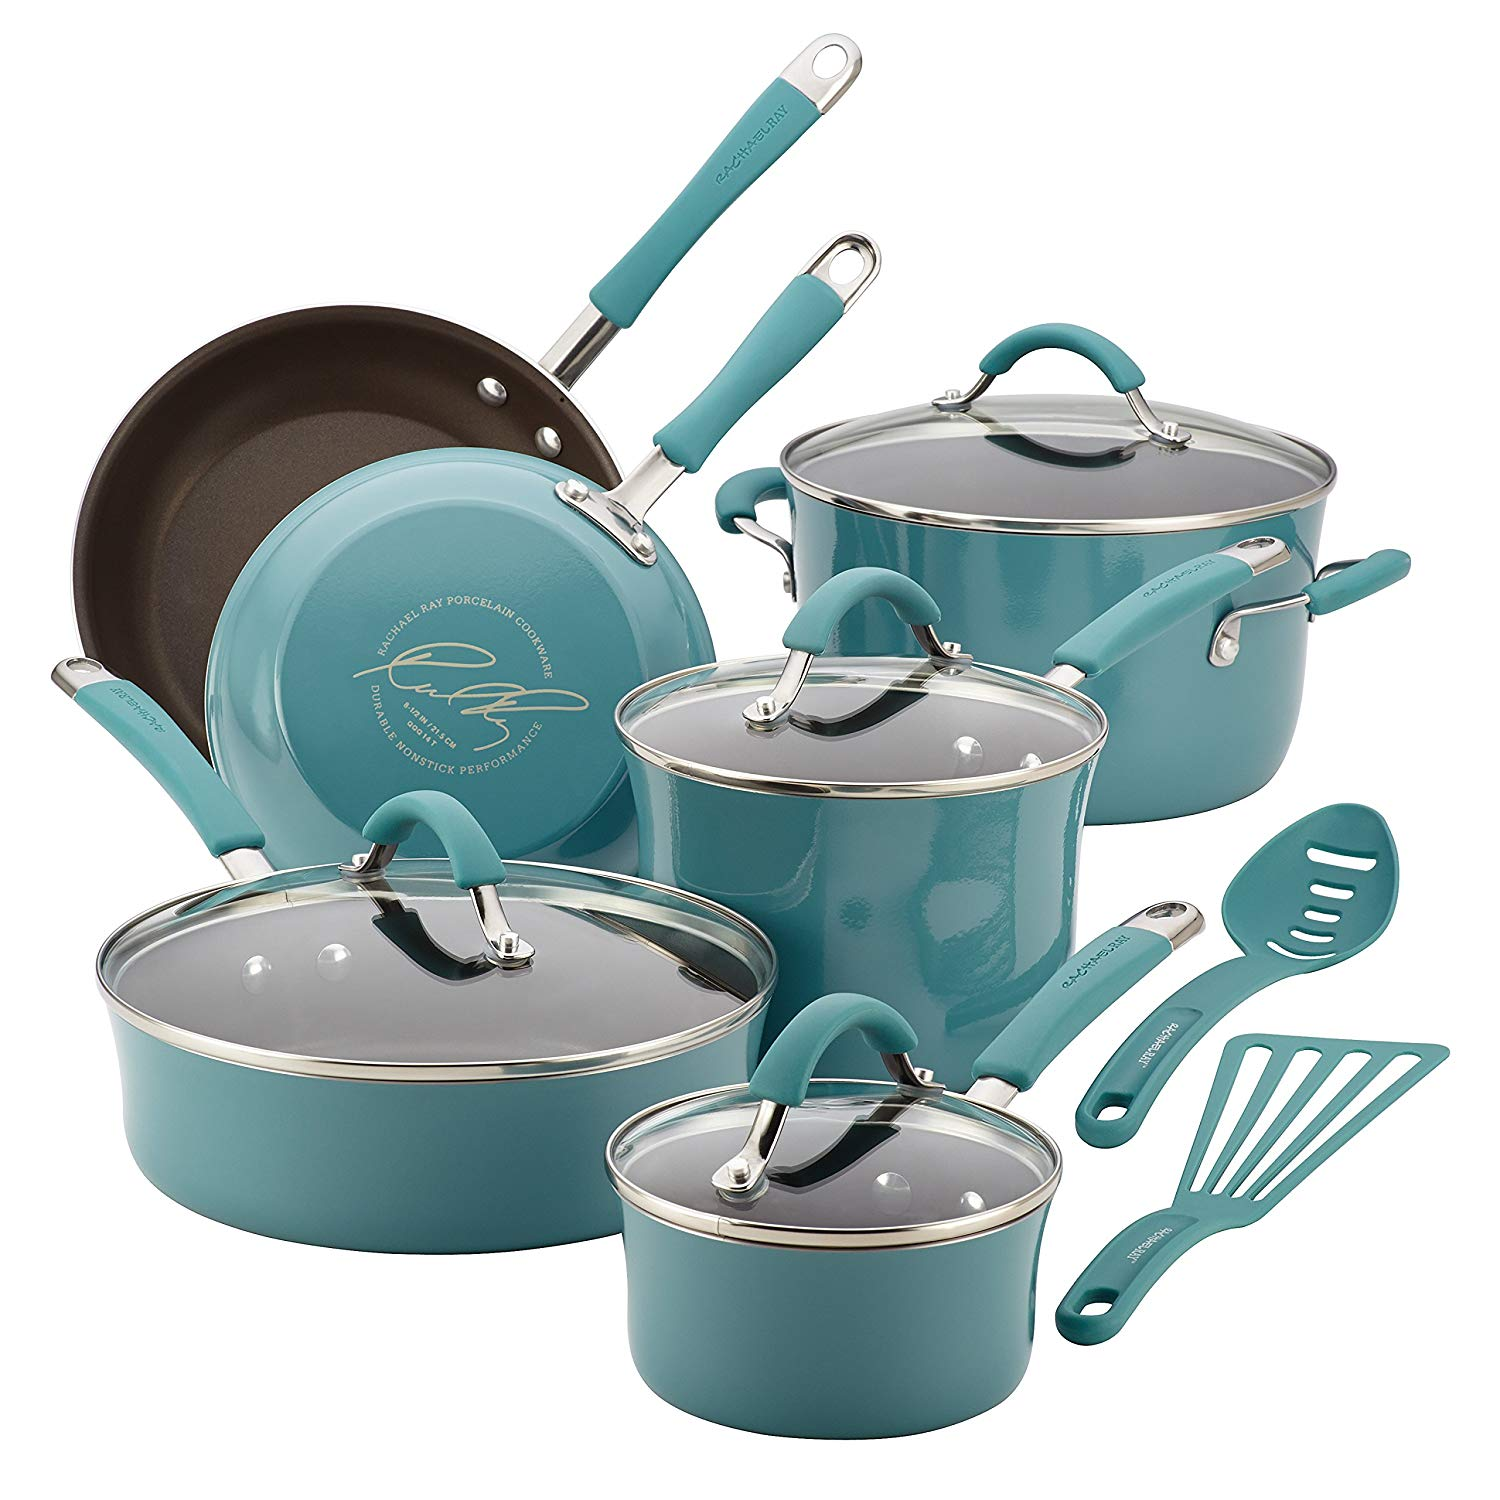 Rachael Ray Cucina Hard Porcelain Enamel Nonstick Cookware Set,